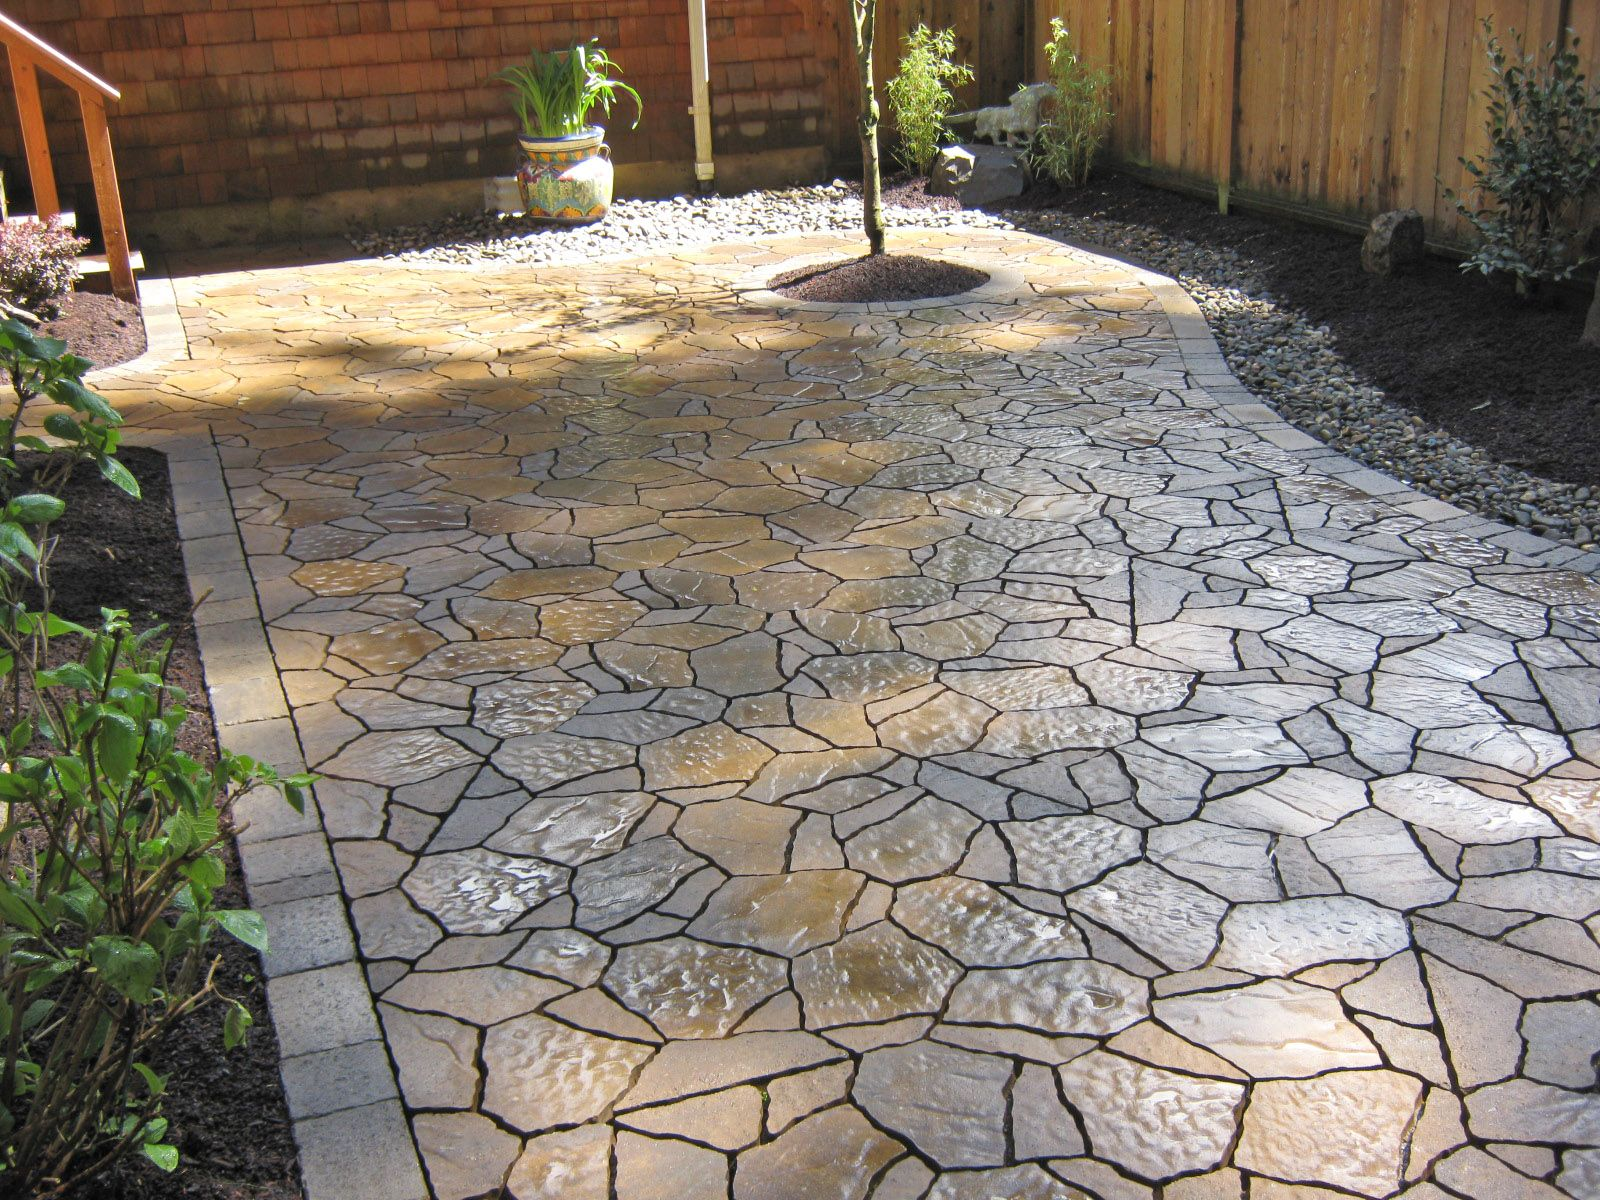 Stone patio ideas landscape archives dennis 39 7 dees for Paving stone garden designs